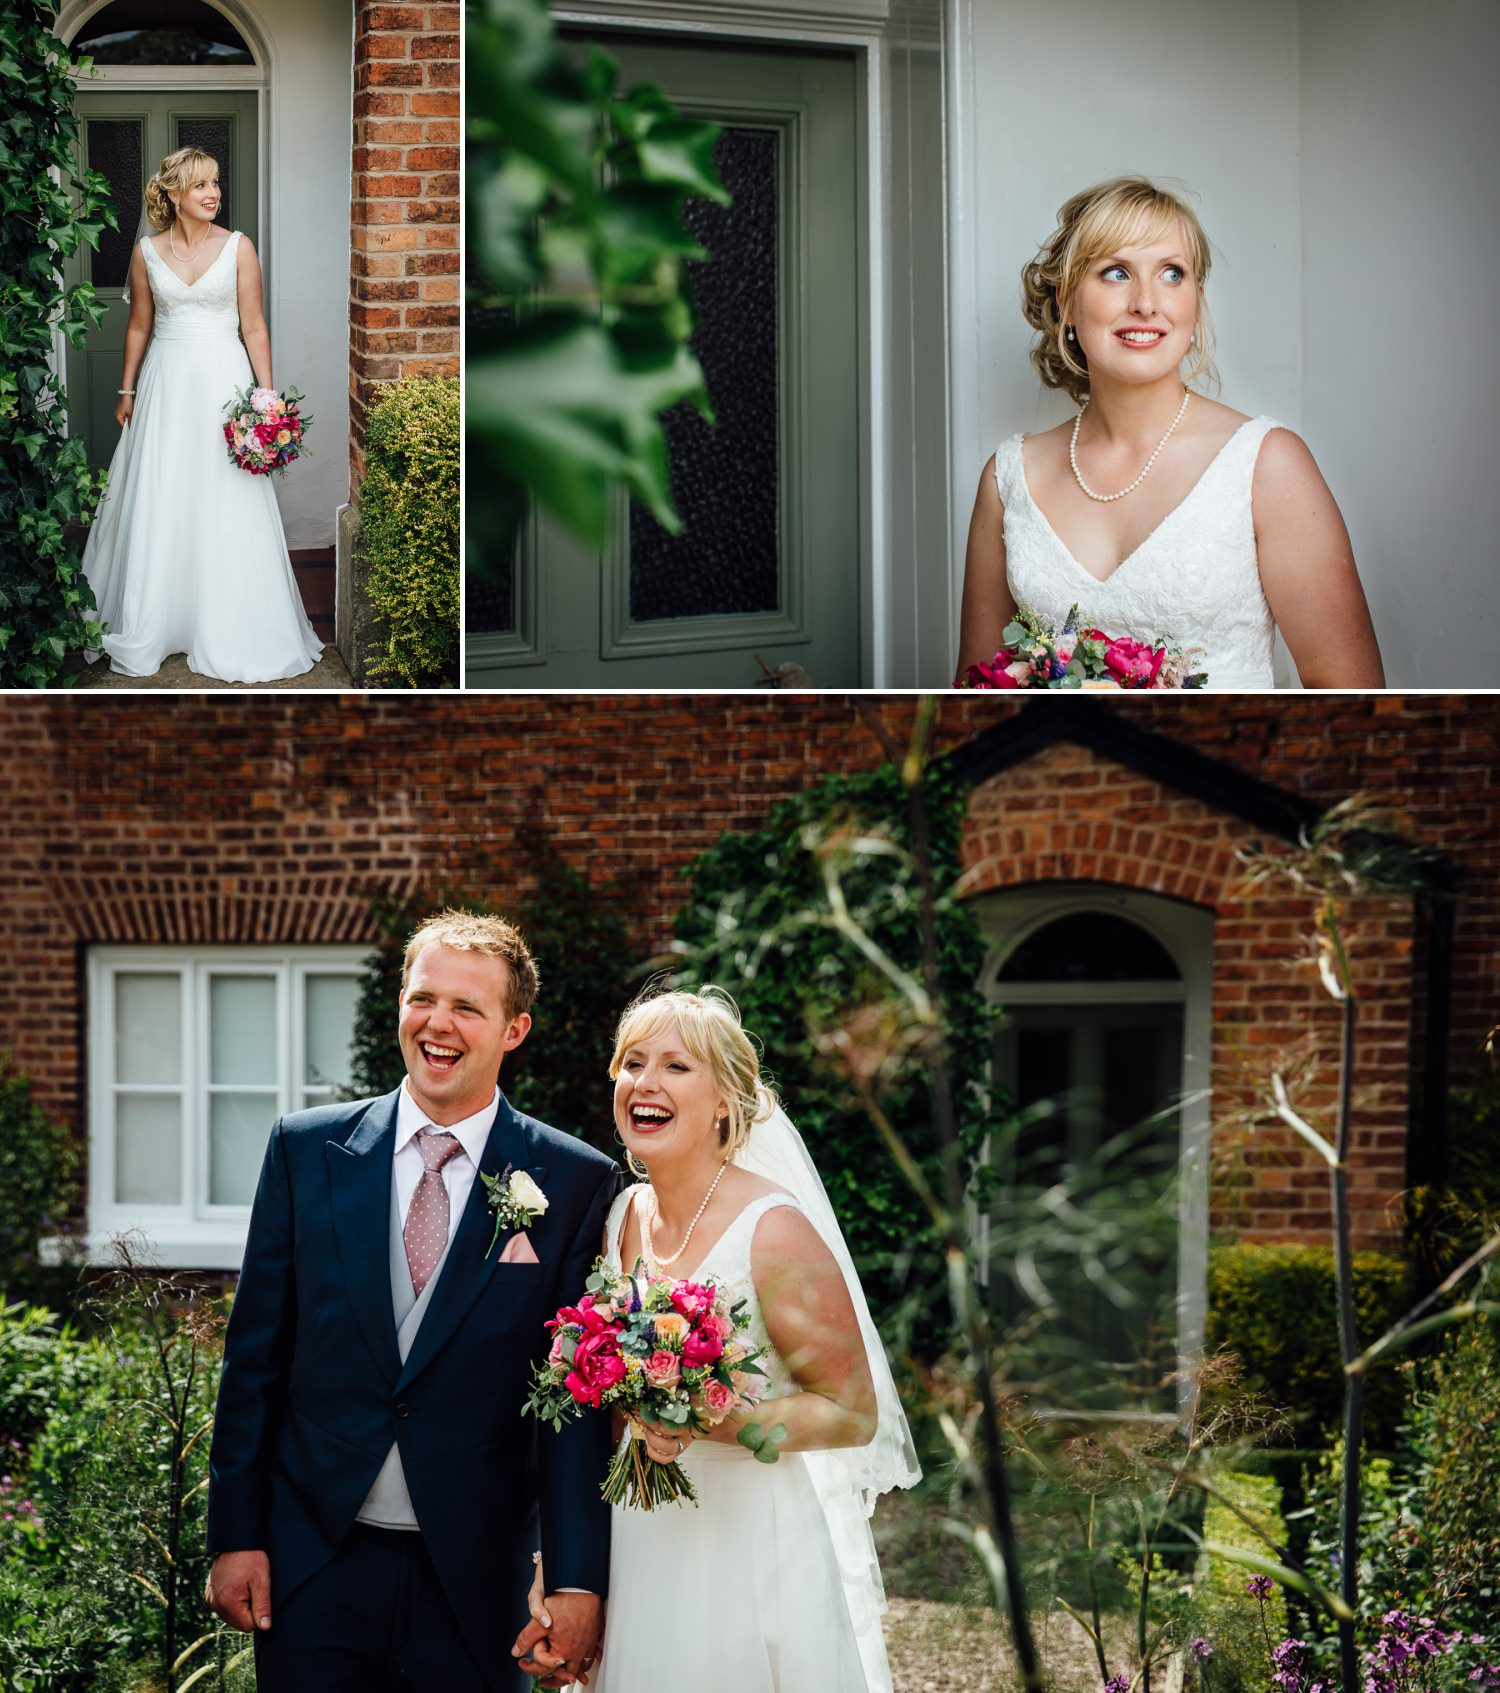 The bride and groom photographs at farm wedding in Macclesfield, Cheshire